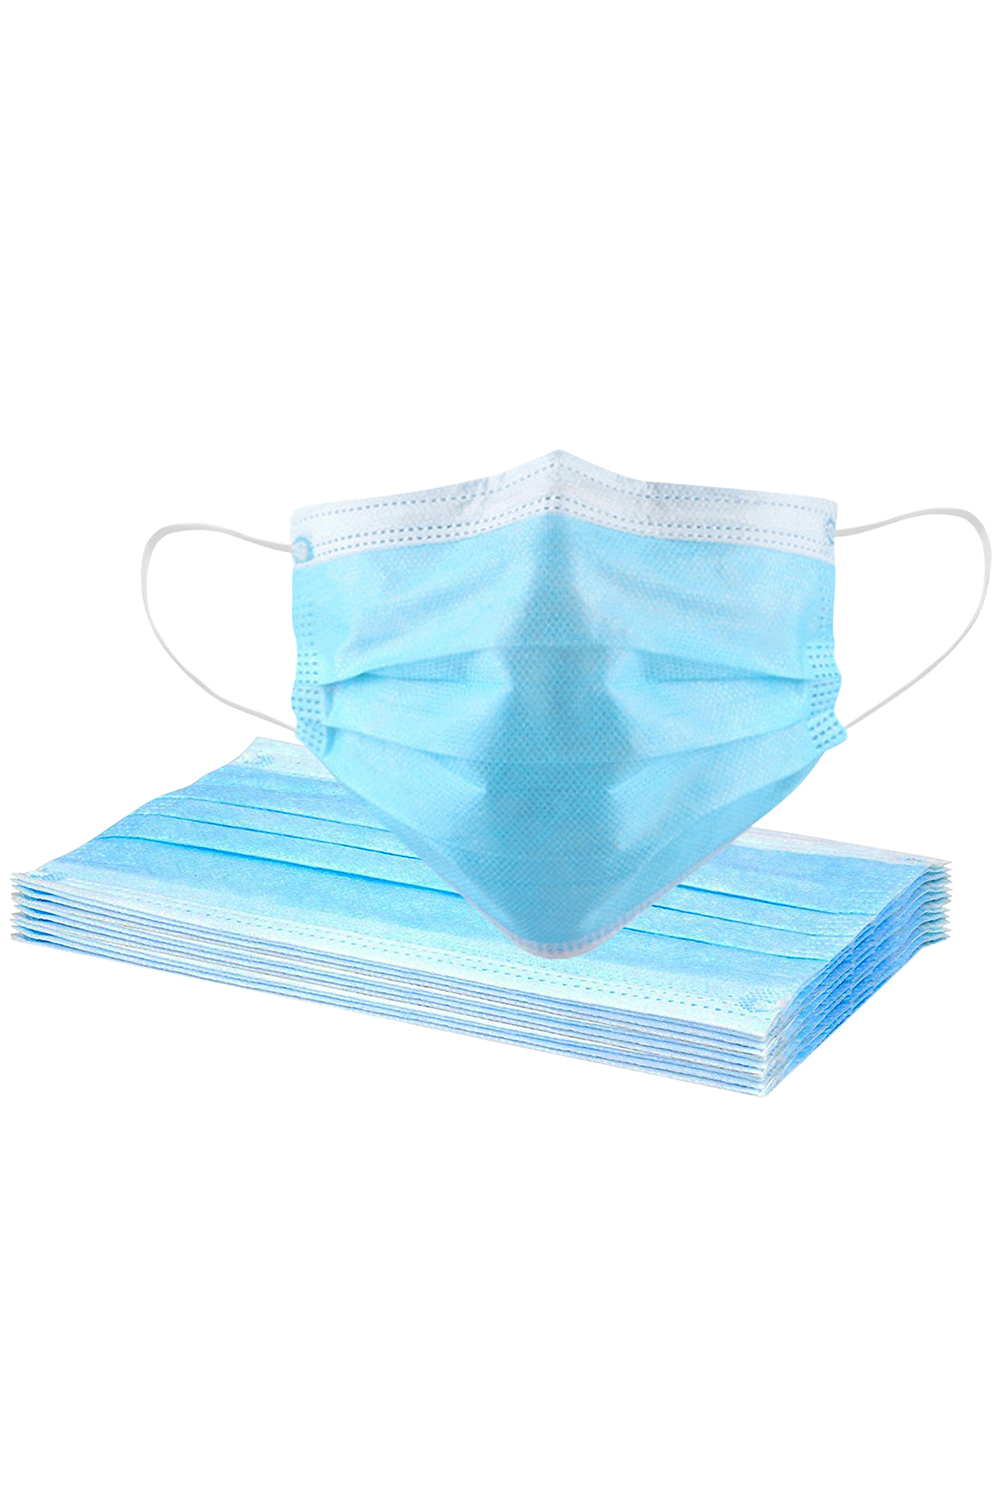 Gift-Not for Sale 1 Pcs Disposable Face Masks with Elastic Ear Loop 3 Ply for Blocking Dust Air Pollution Protection